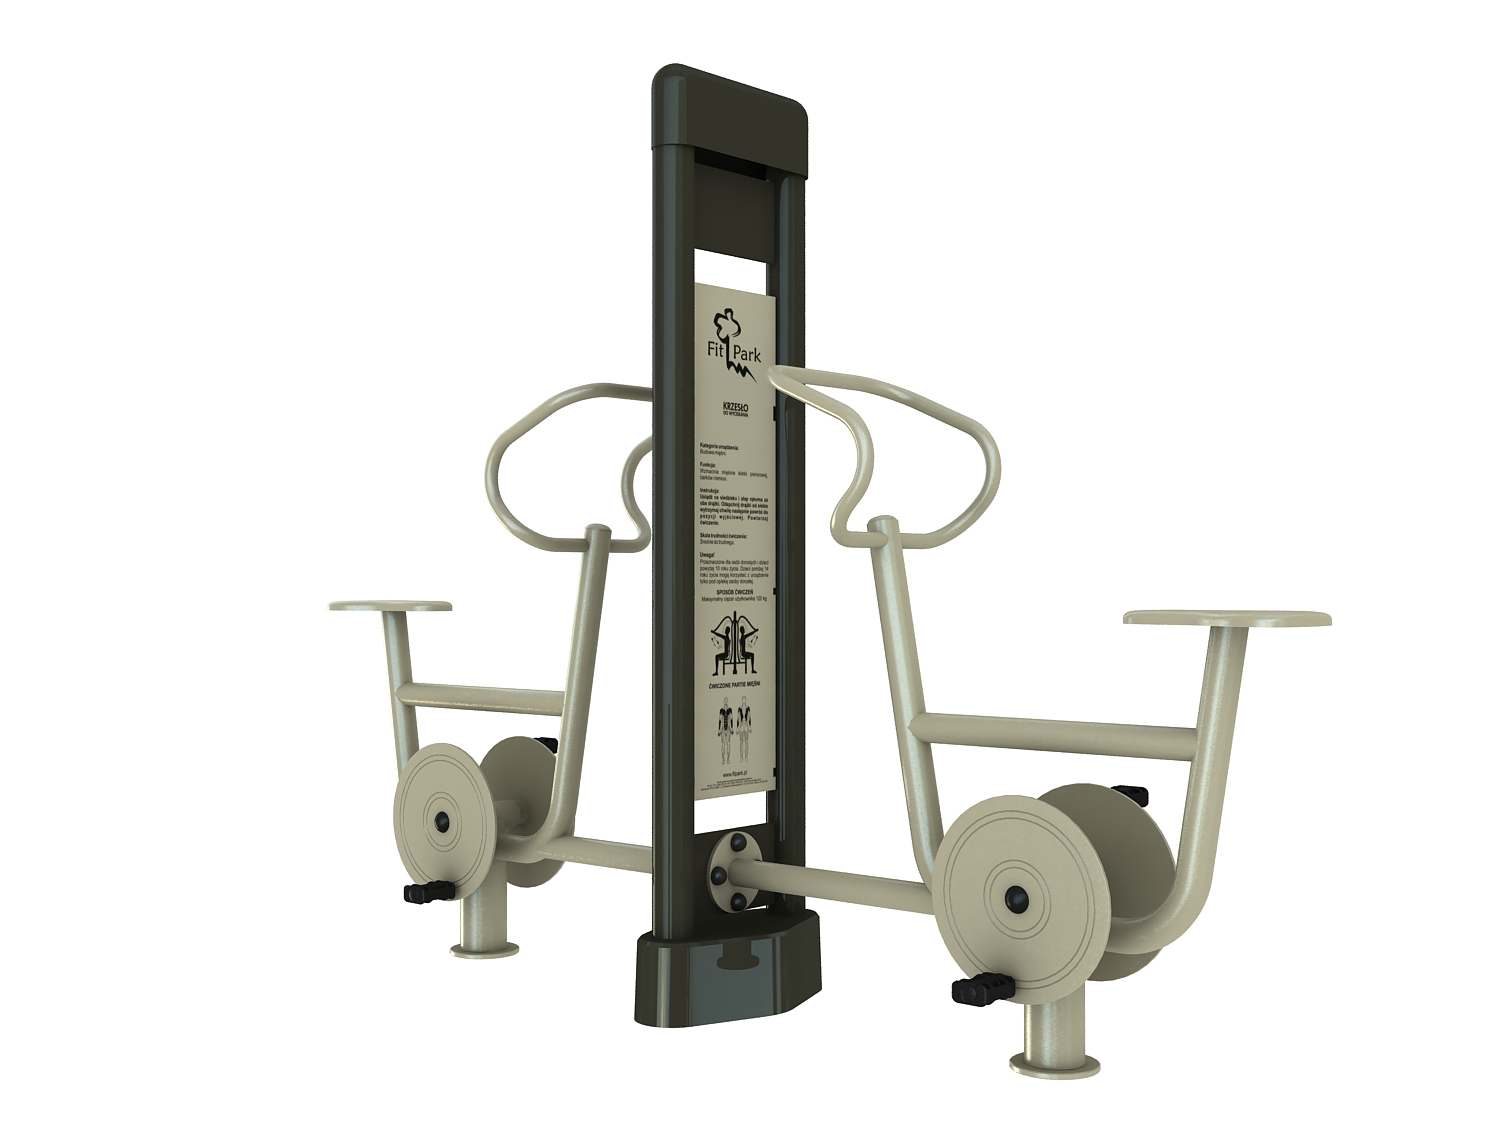 Rower FIT D25